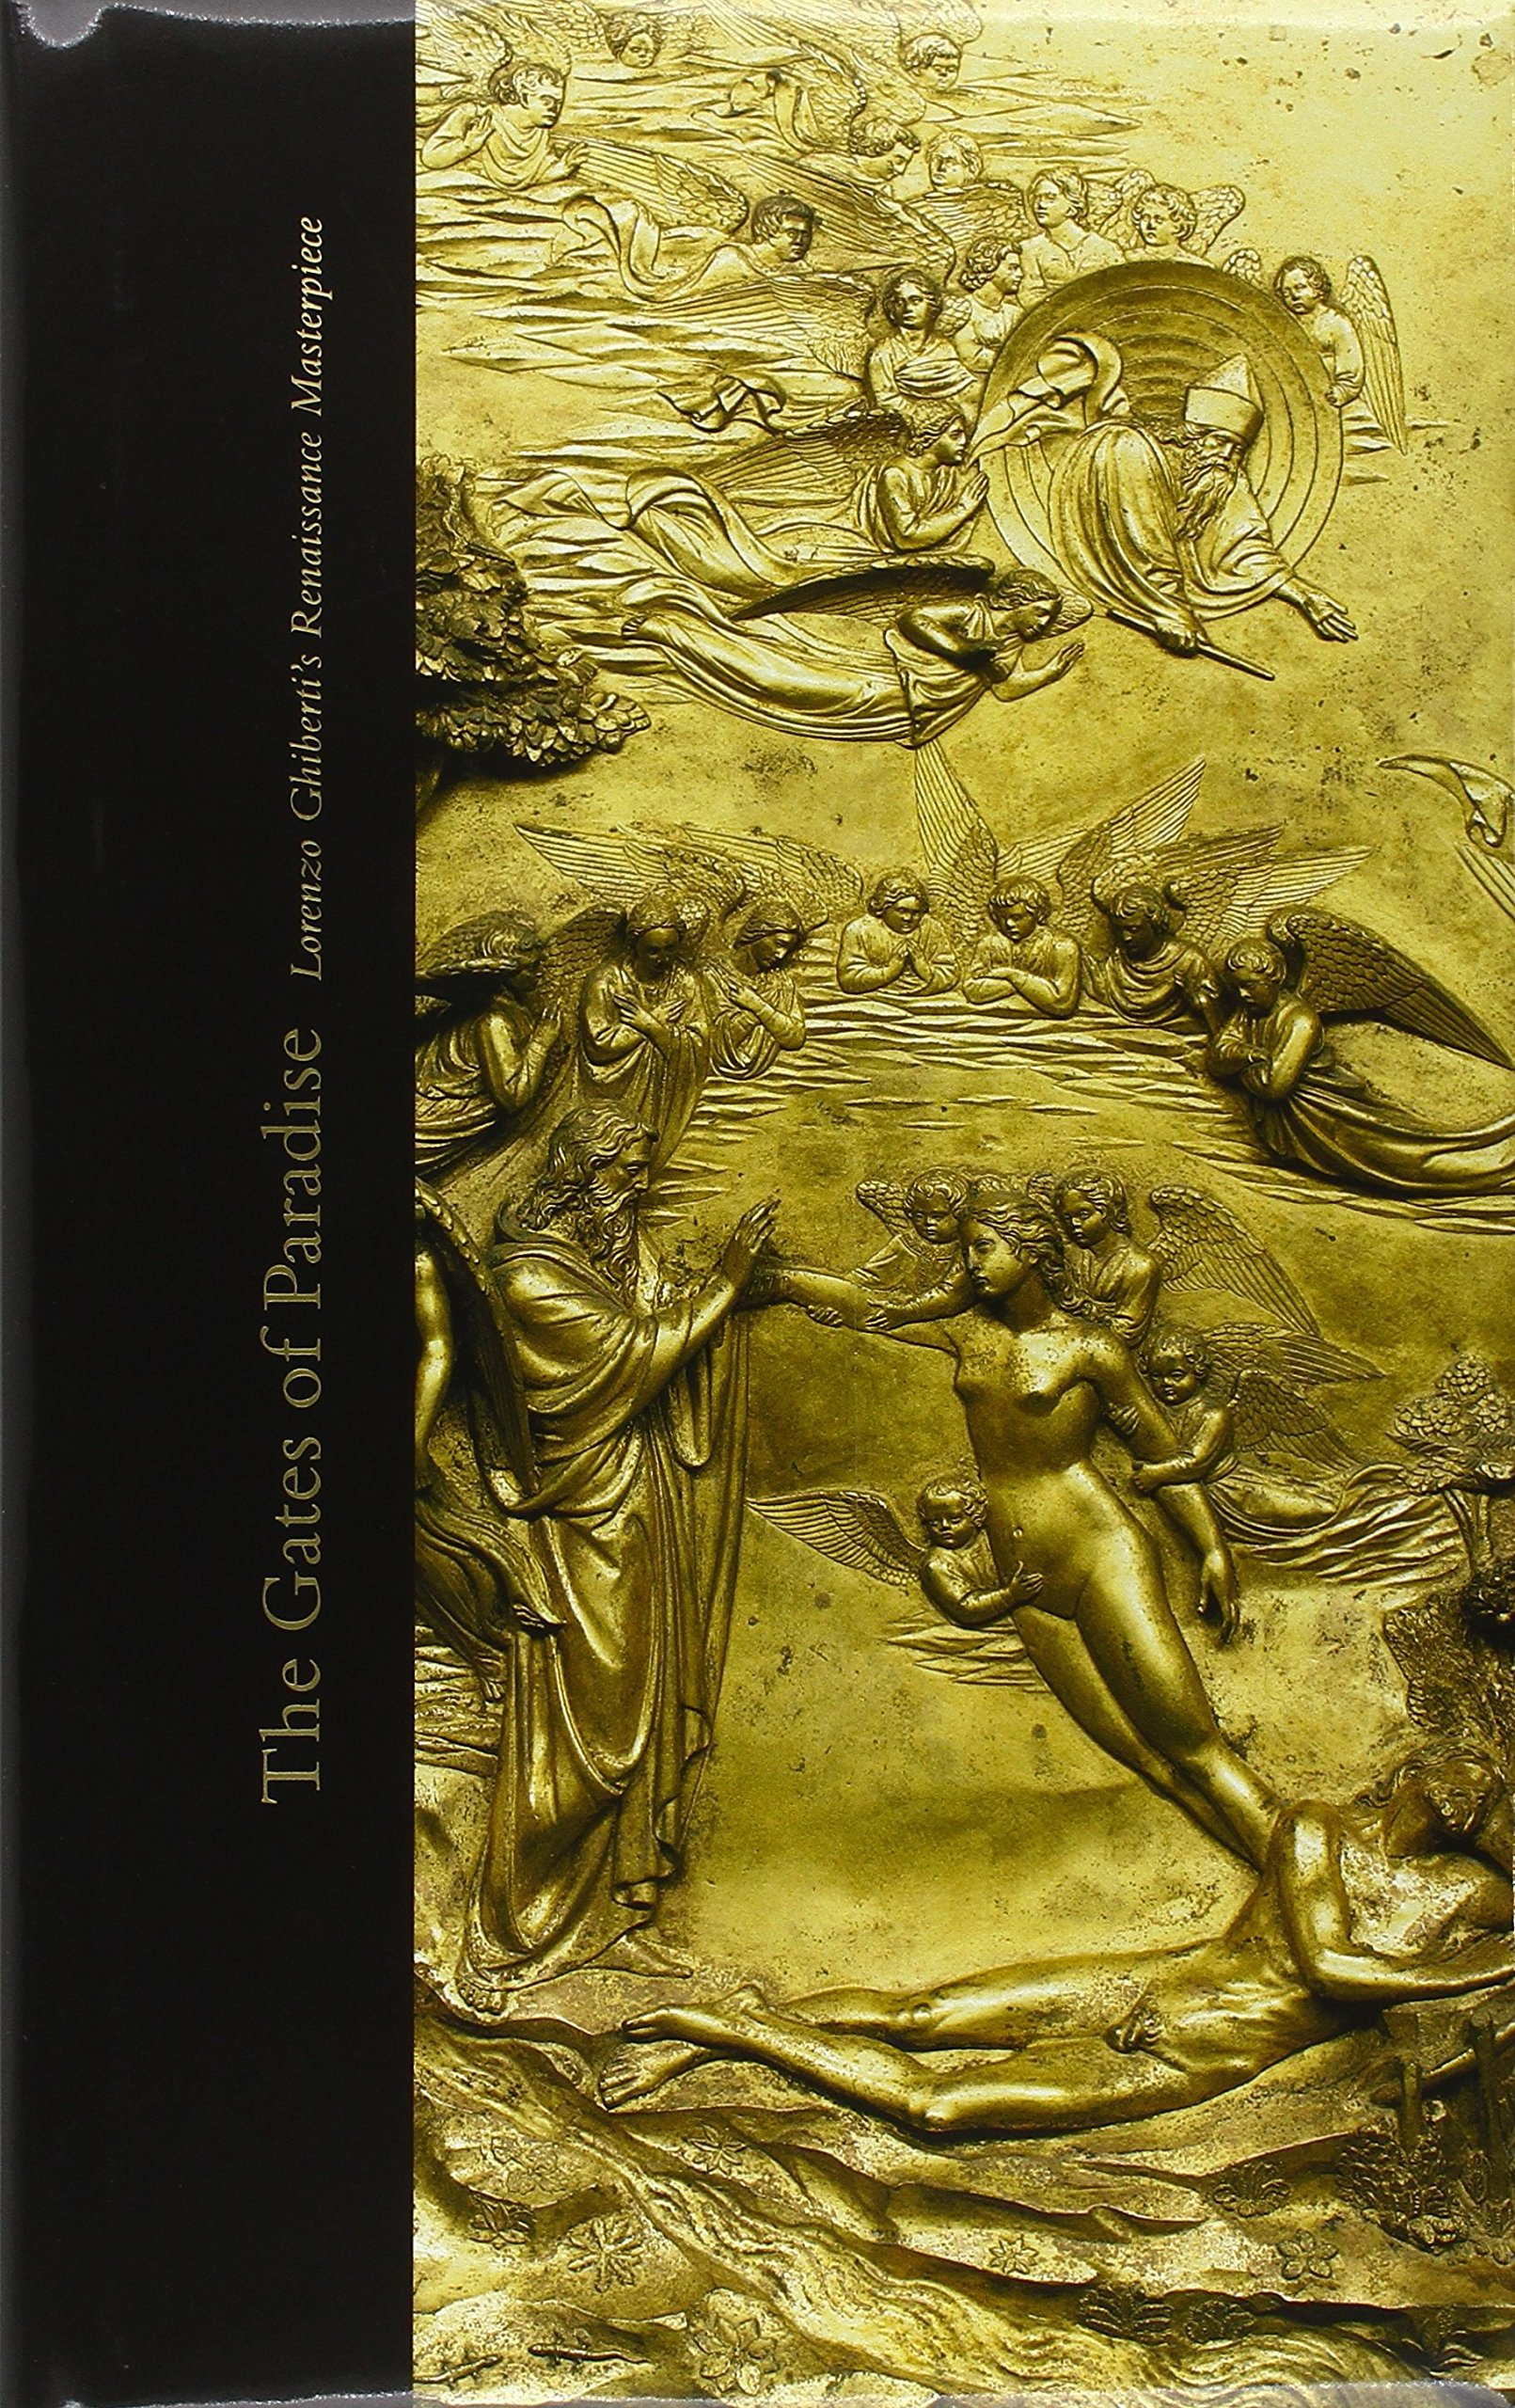 The Gates of Paradise: Lorenzo Ghiberti's Renaissance Masterpiece